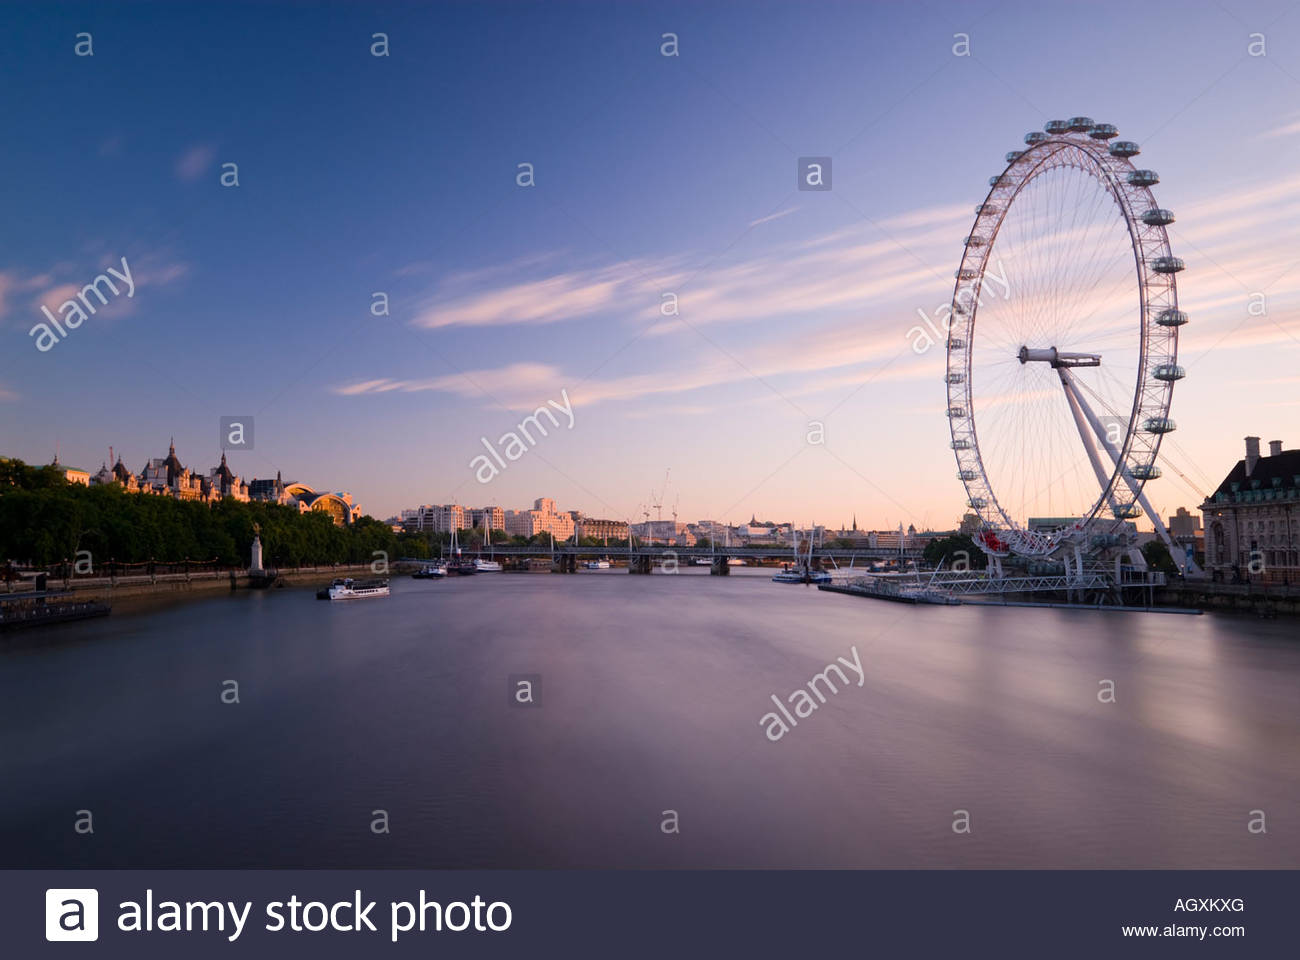 The London Eye and the river Thames at sunrise, London, England. Stock Photo